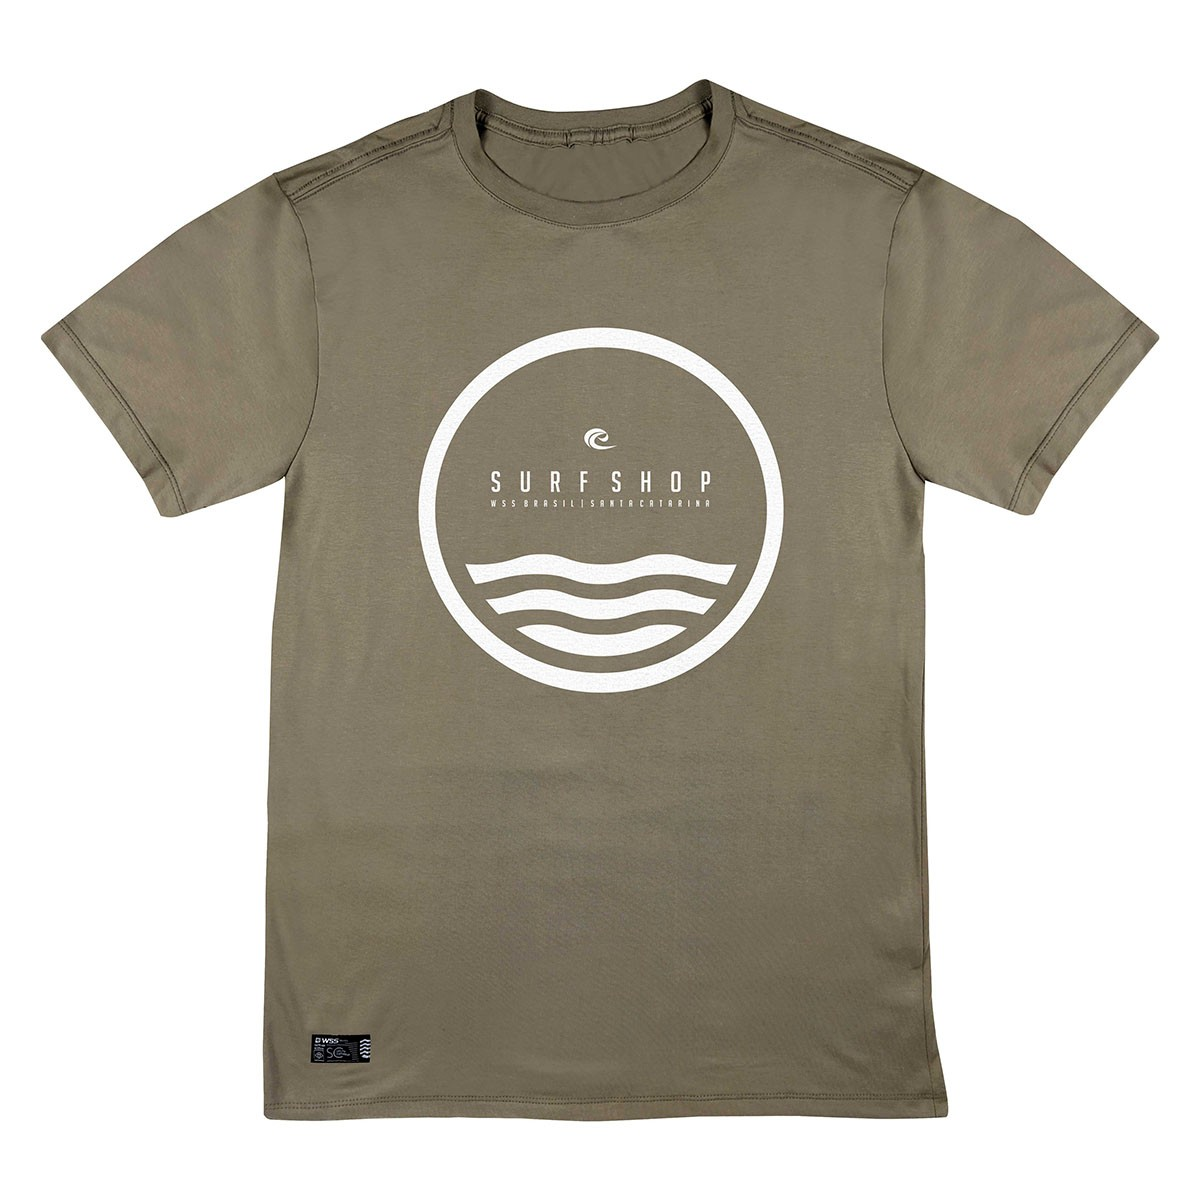 Camiseta WSS Brasil Circle Light Khaki